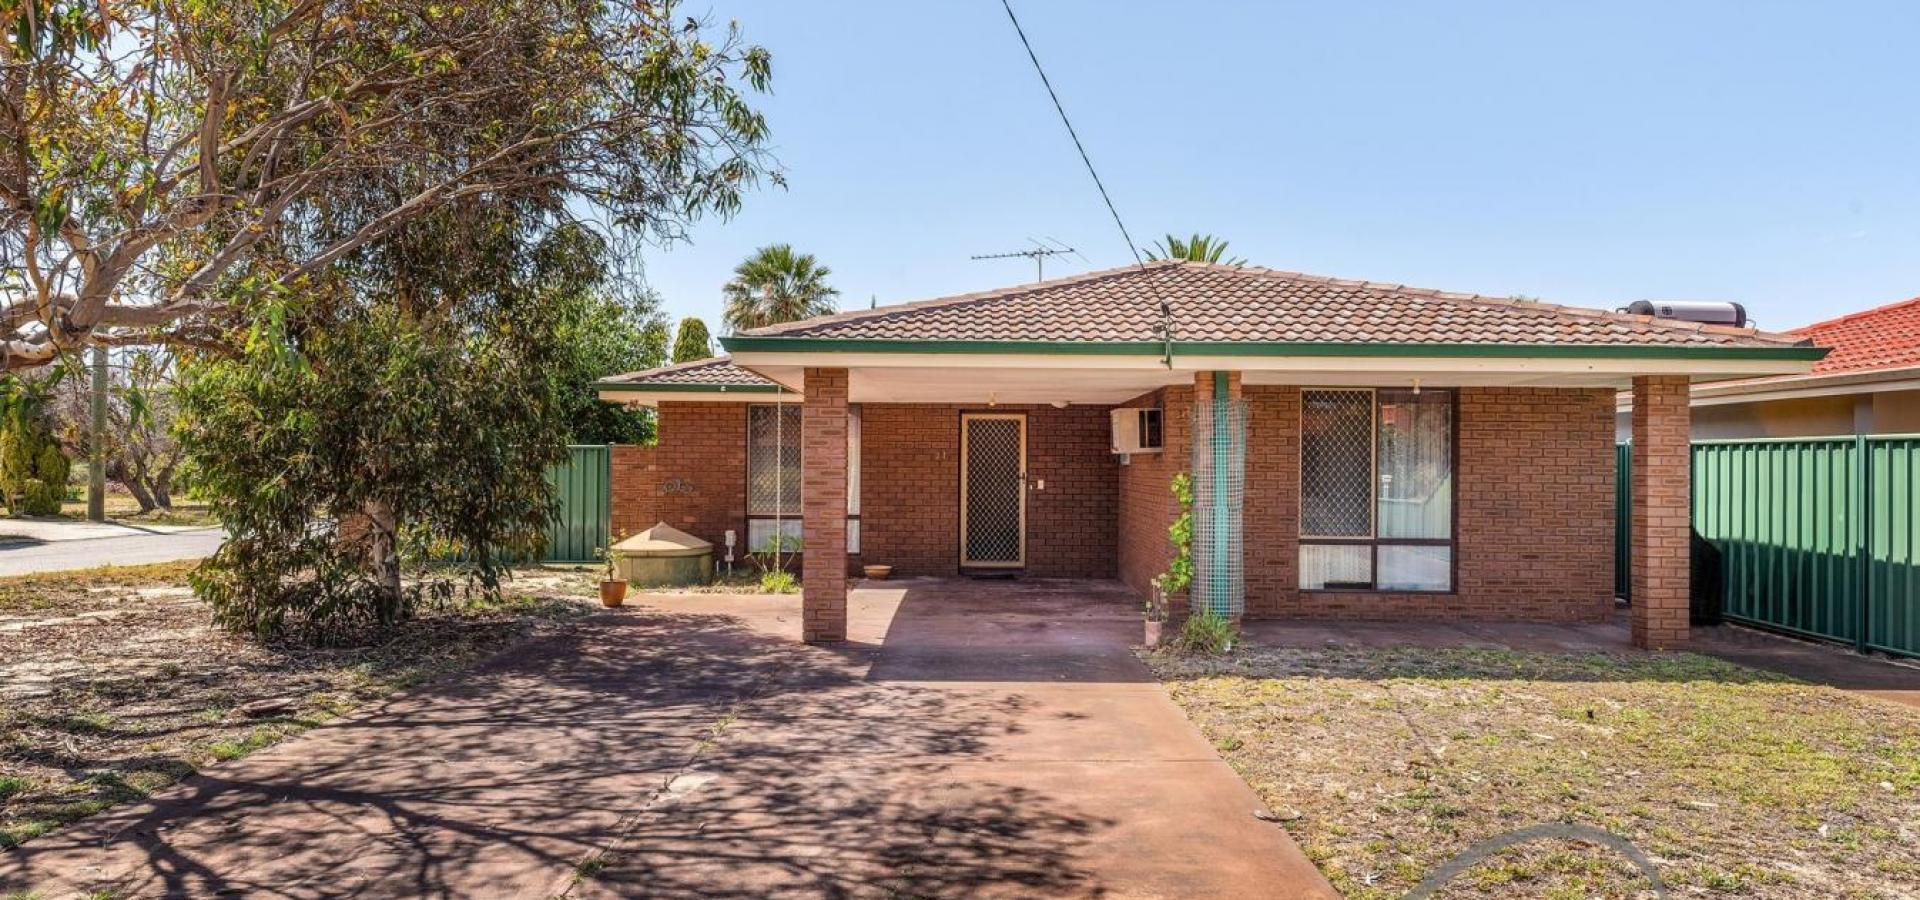 GREEN TITLE FAMILY HOME CLOSE TO SCHOOLS!!